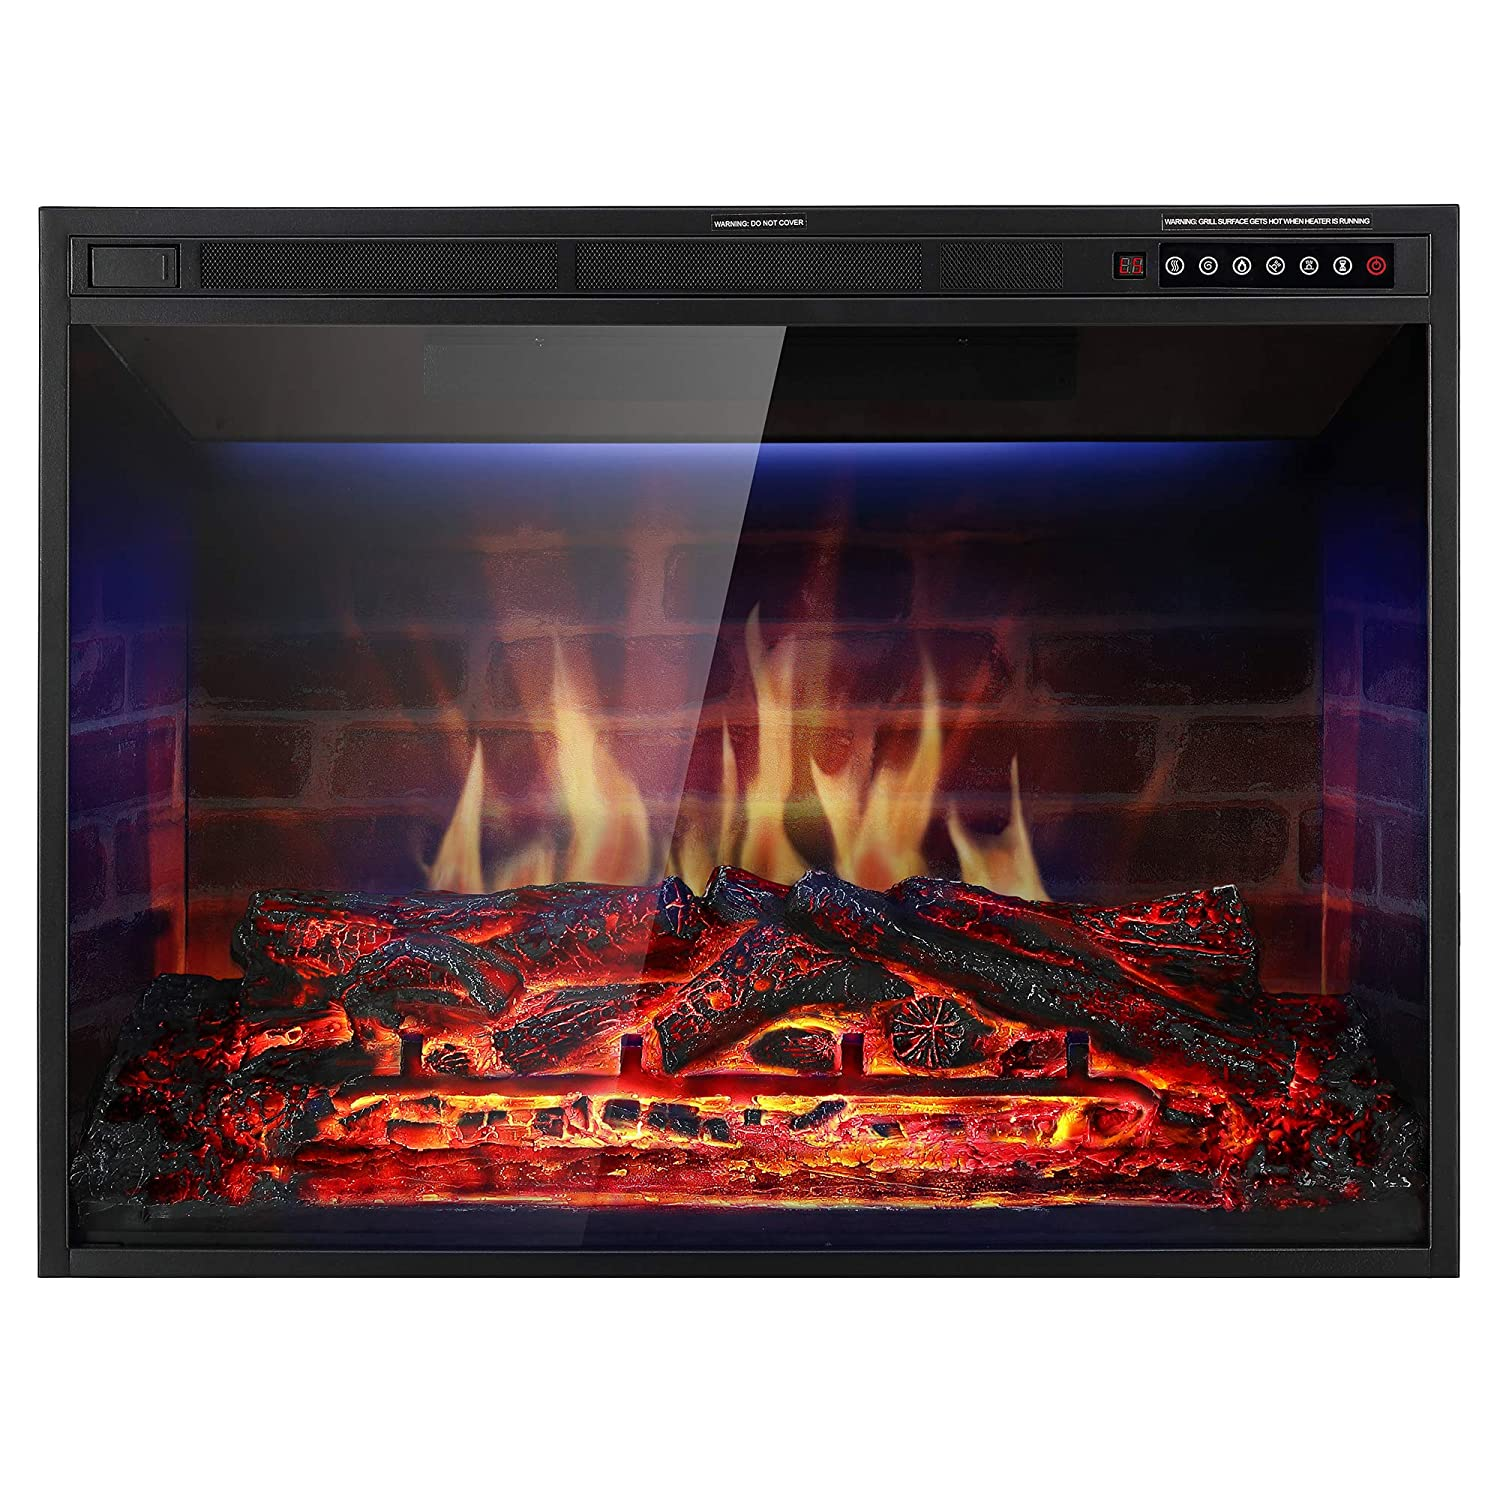 Xbeauty 33 Electric Fireplace Insert Recessed in Wall Freestanding Heater w Large Screen Multicolor Flames,Adjustable Flame Speed,Remote Control,750w 1500w,Black